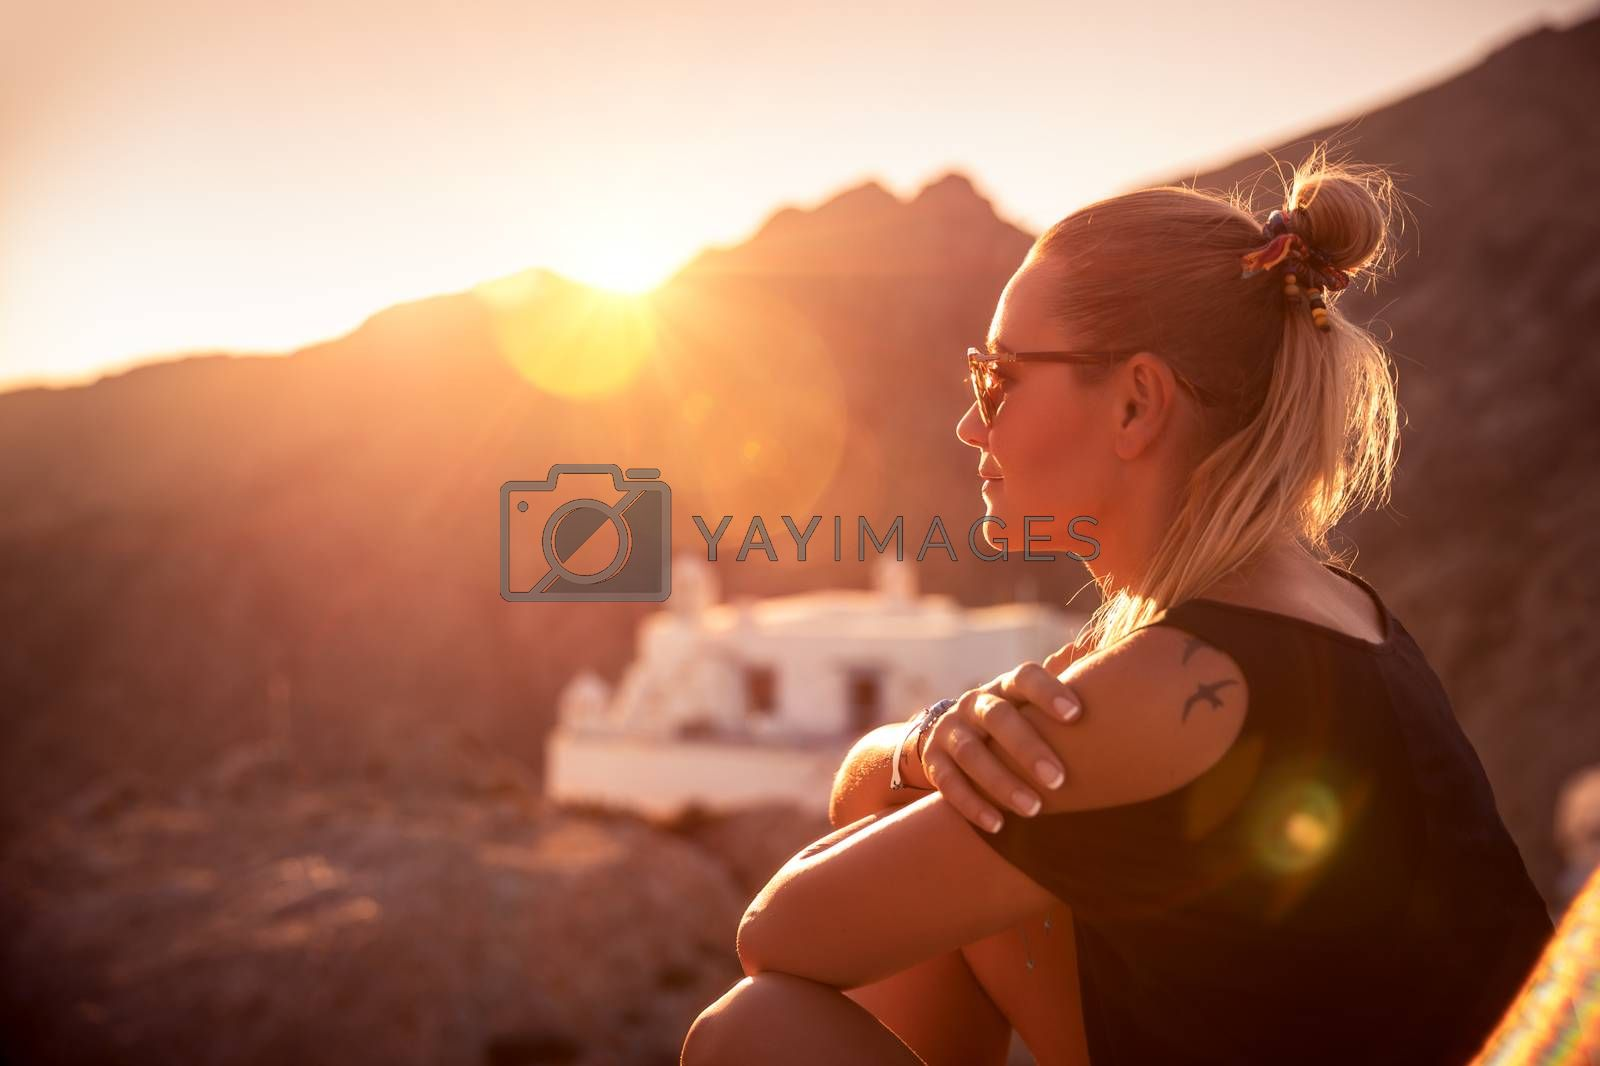 Beautiful woman enjoying travel, wonderful place on sunset light, girl sitting on the mountains near the monastery, happy summer holidays